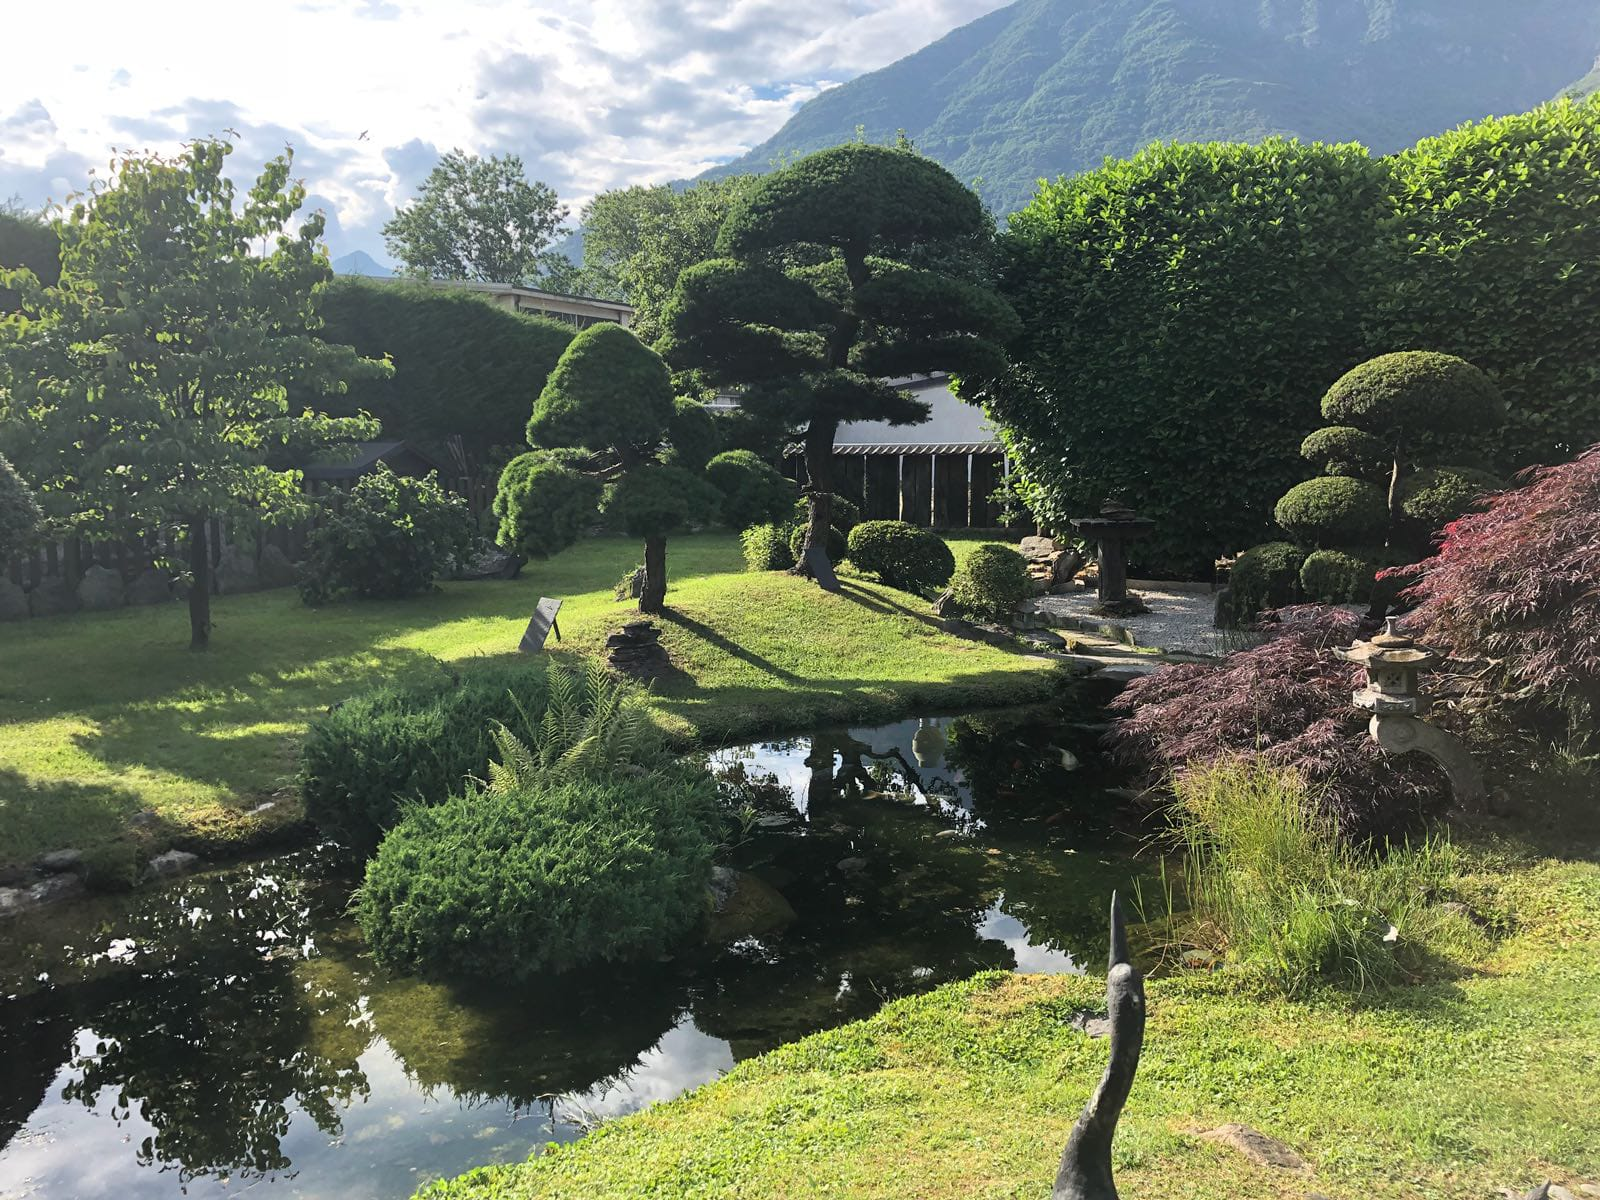 A Japanese oasis at the foot of the Alps